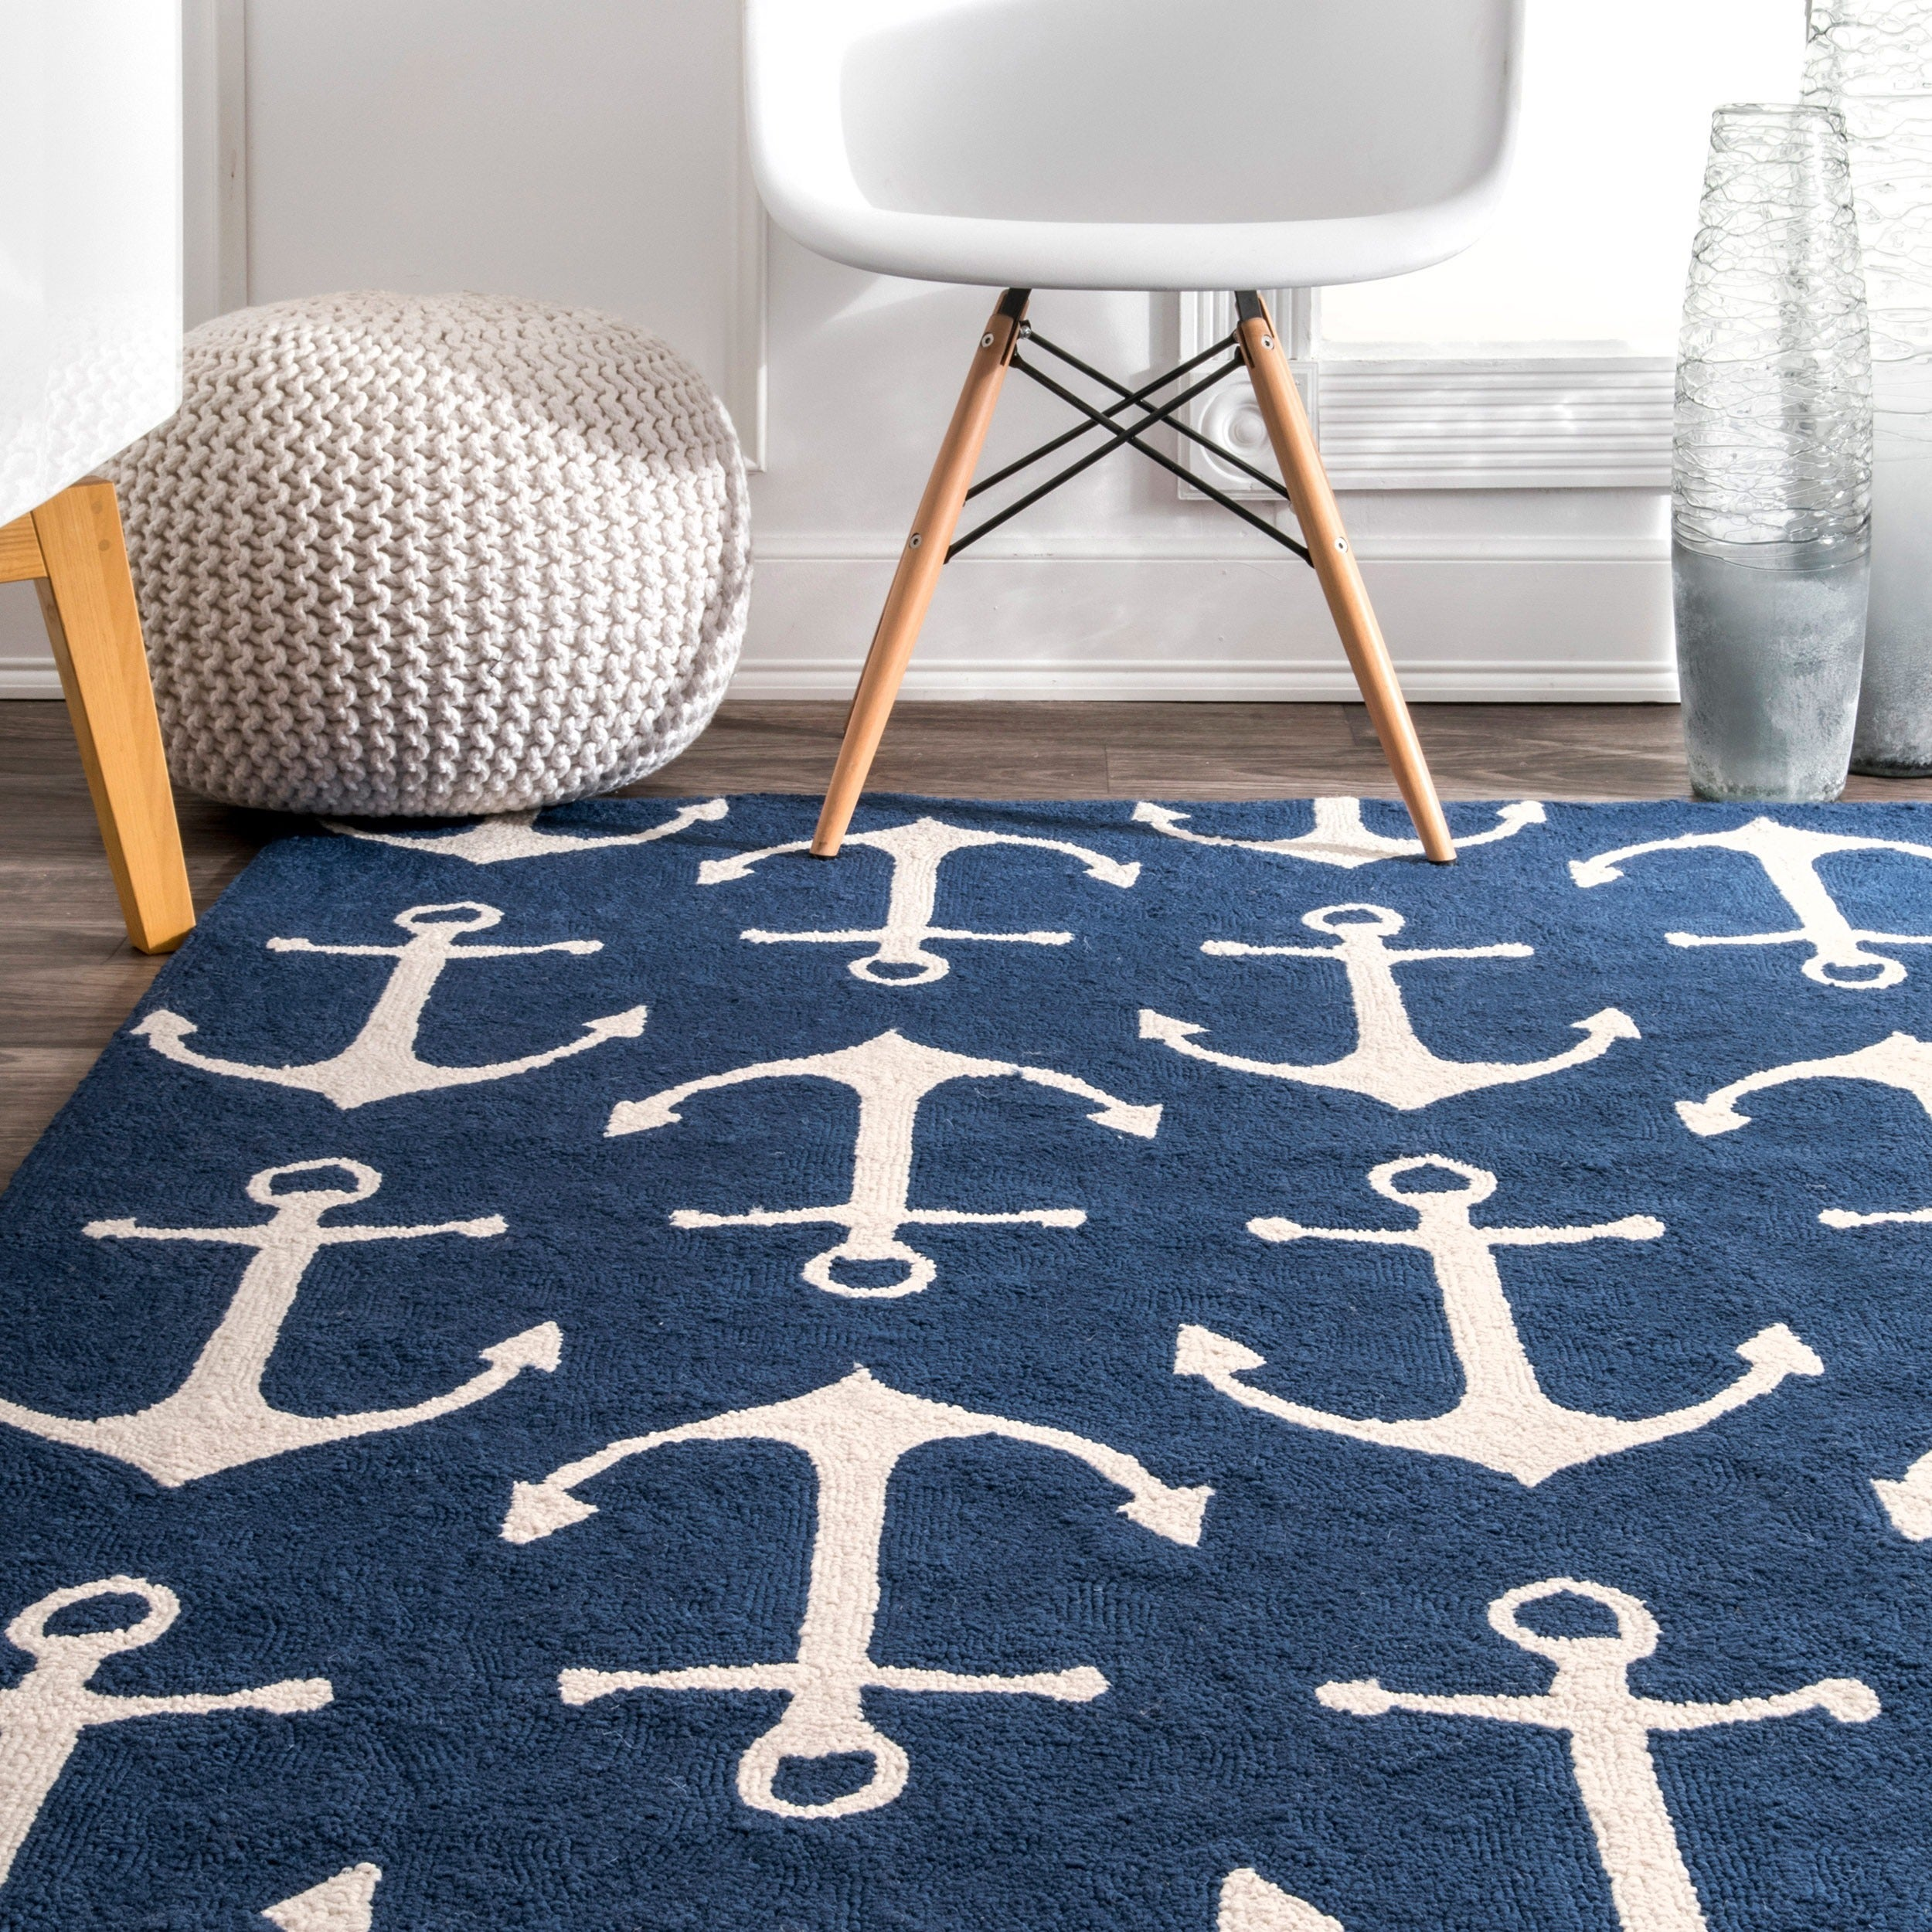 flokati and s contemporary nautical superstorearea pin shag home area rugs styles rug outdoor america buy decorating including usa in braided many at